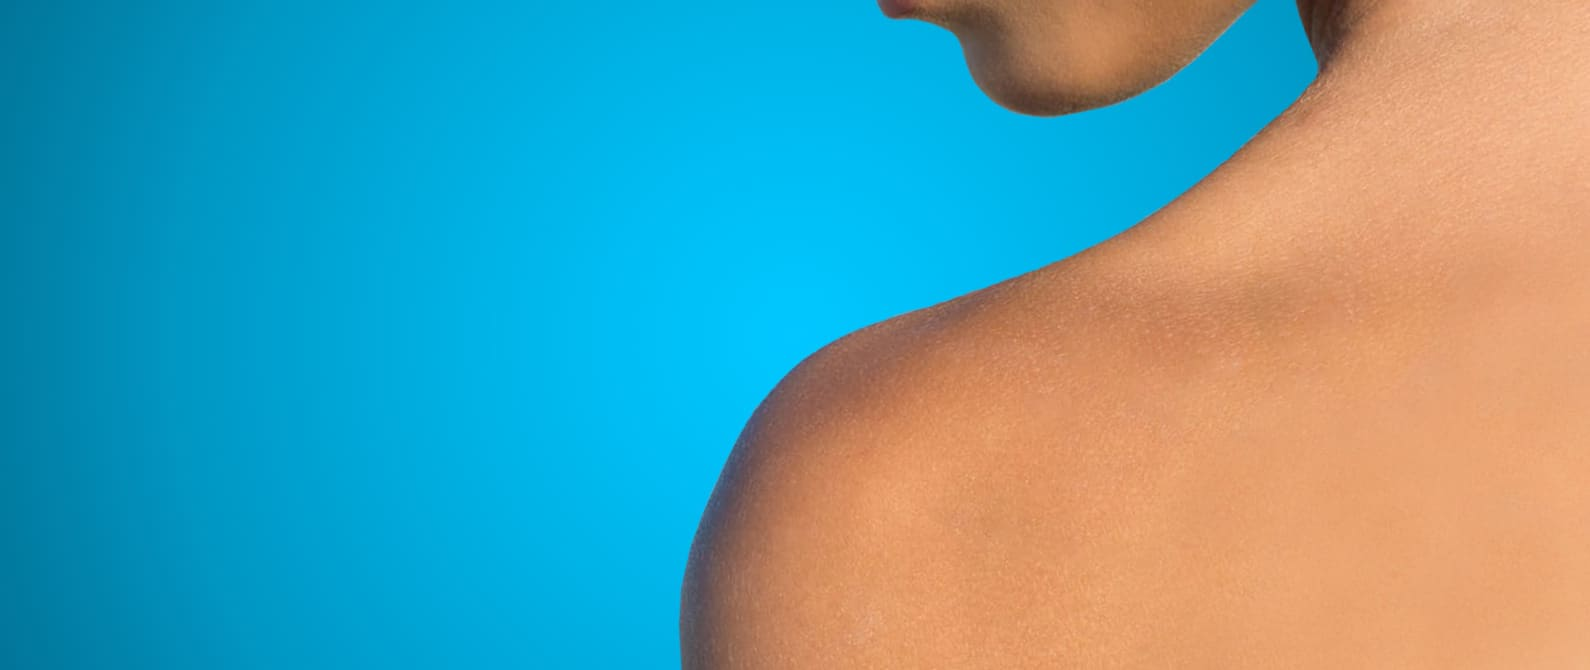 Shoulder in the sun with skin treatment